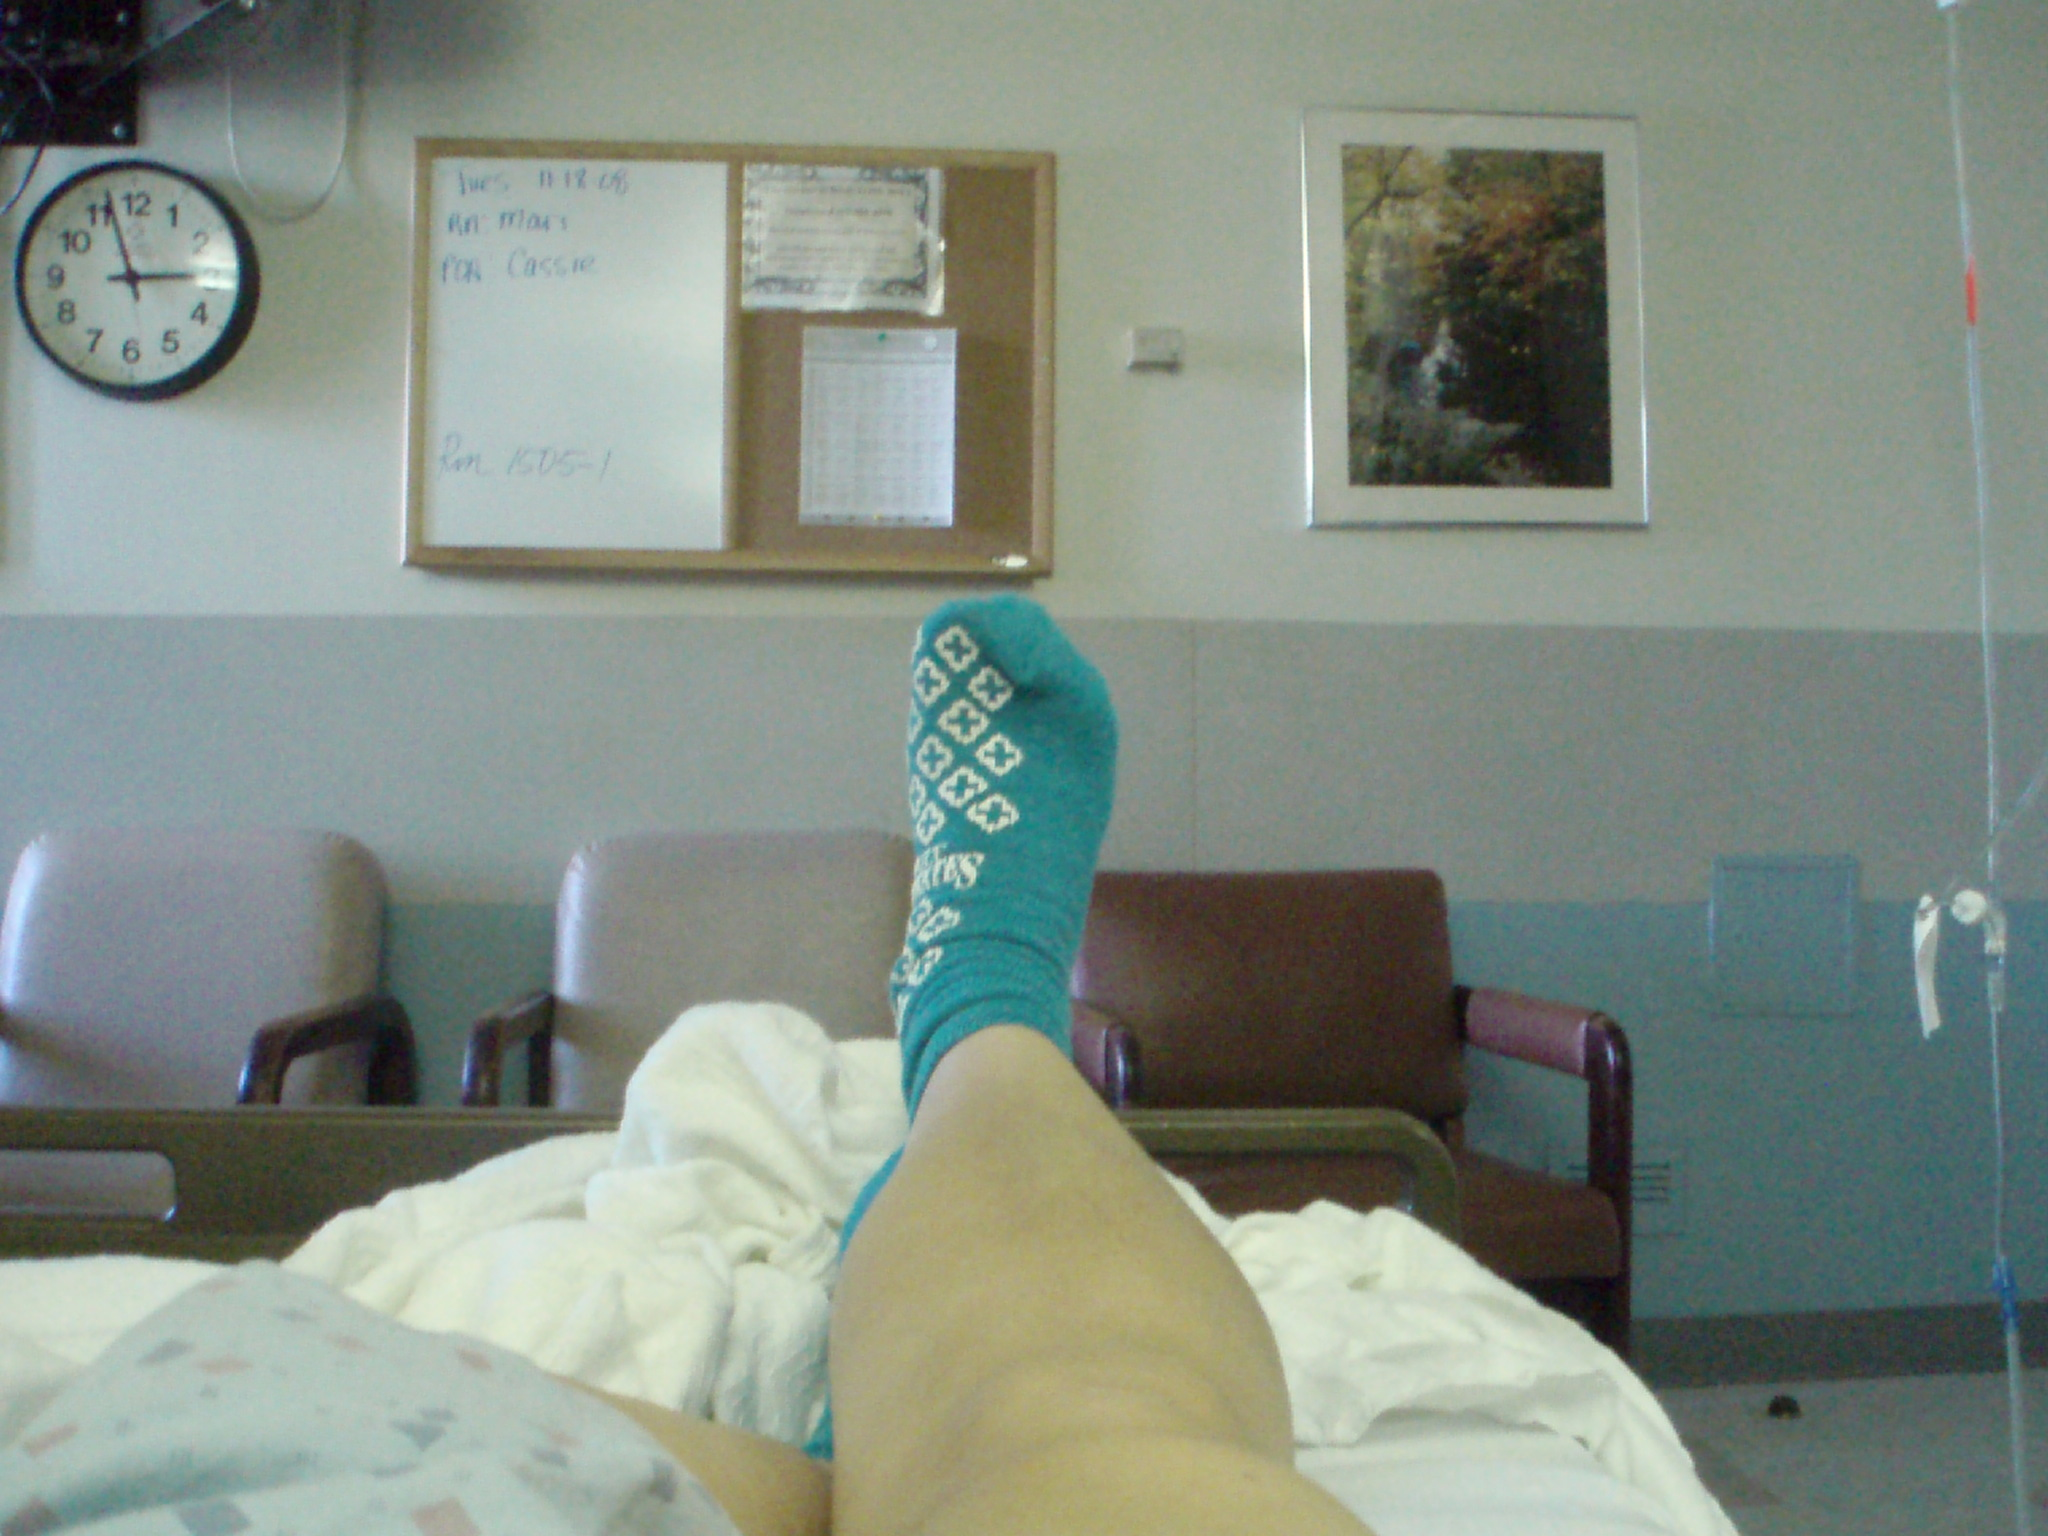 Hospital Room With Patient And Family